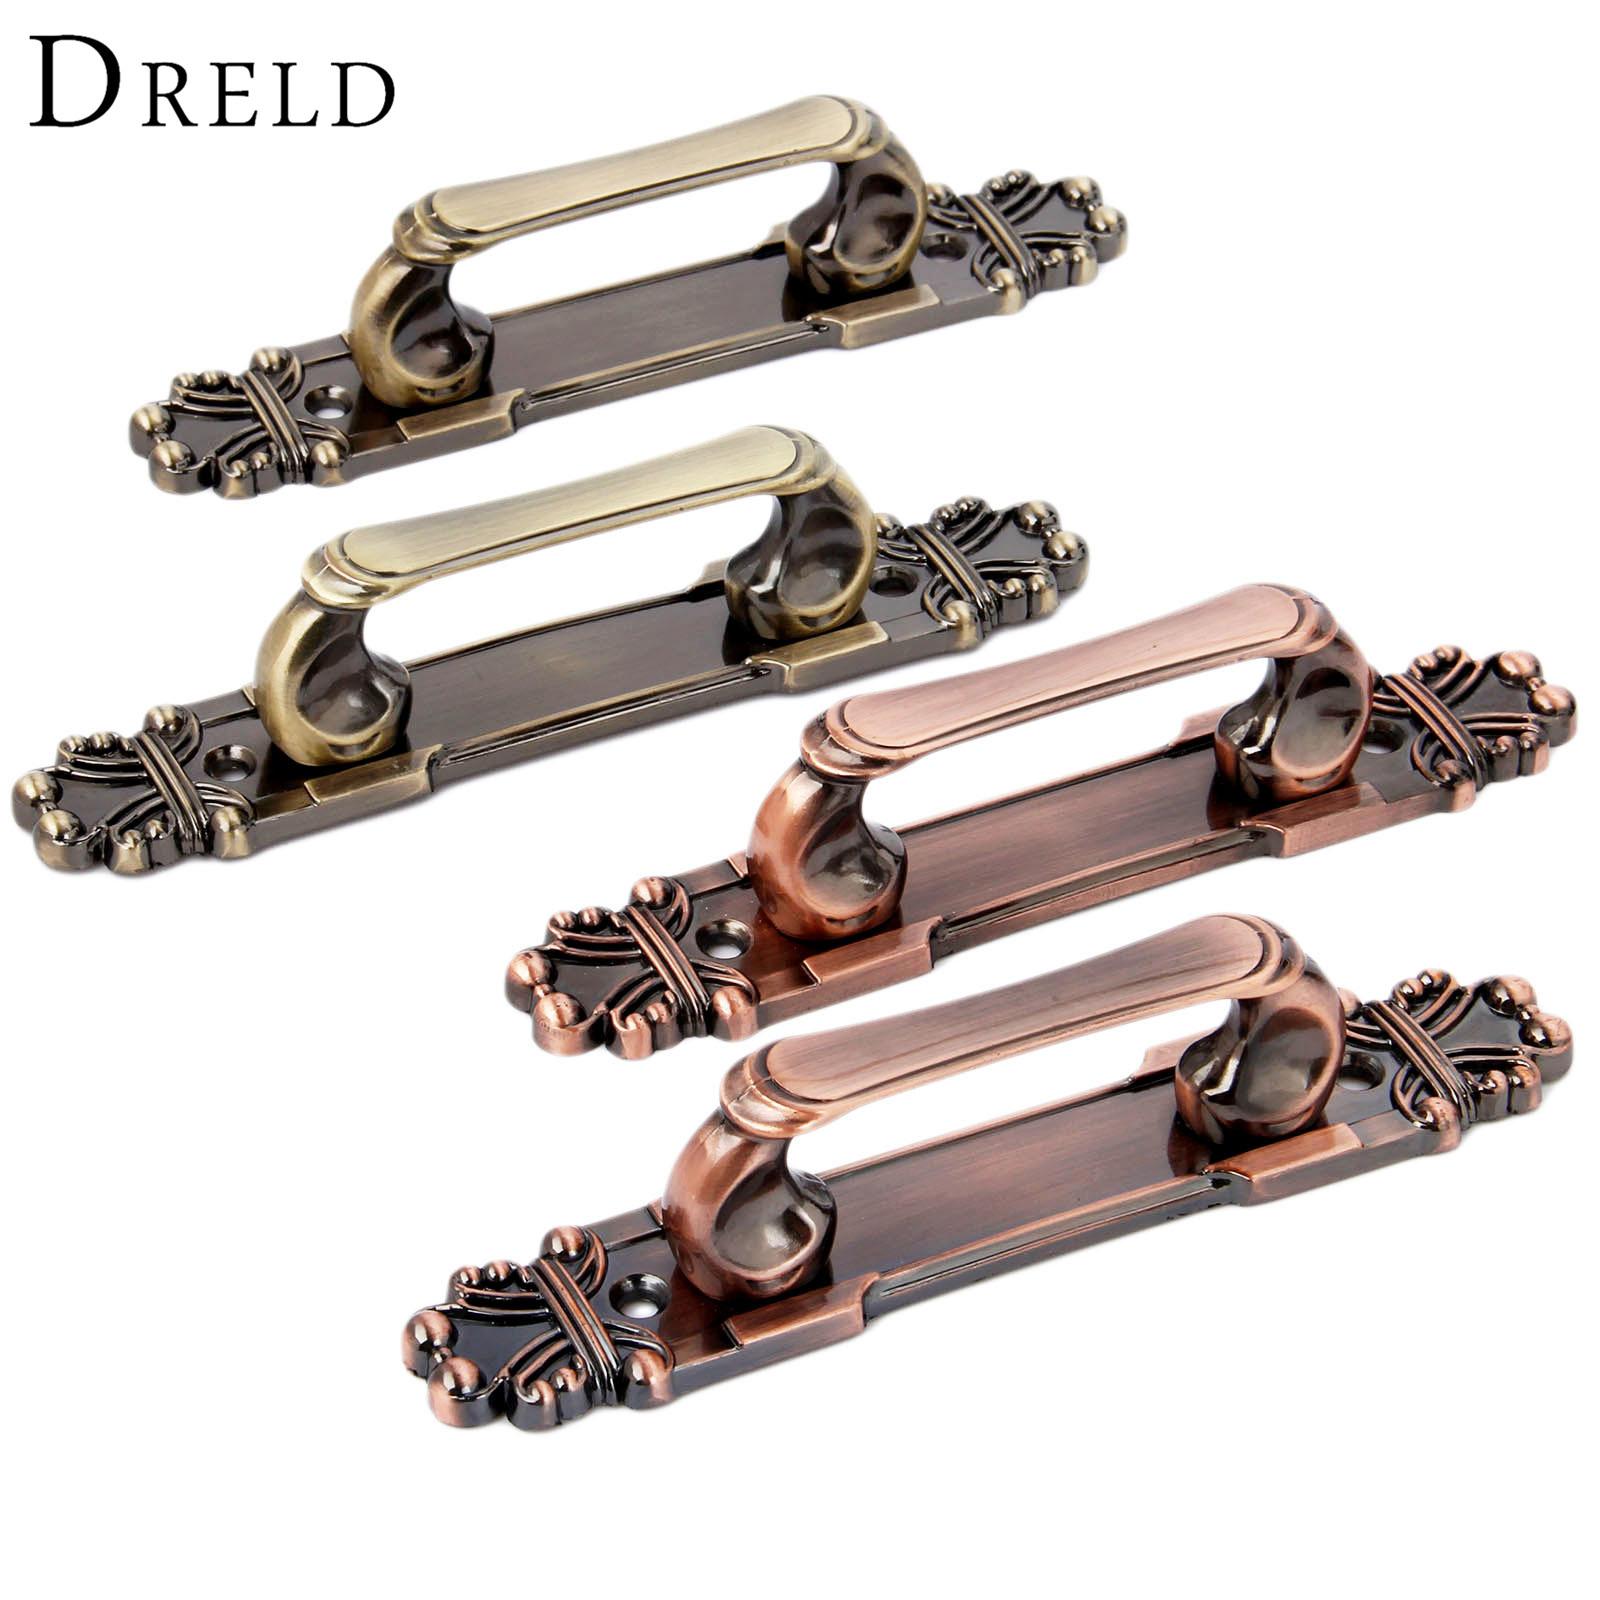 DRELD 2Pcs Antique Furniture Handles Zinc Alloy Door Pull Handle Vintage Drawer Cabinet Knobs and Handles Kitchen Furniture Knob 10 inch long cabinet handles and knobs drawer pull for furniture and cupboard simple wardrobe handle zinc alloy door handle